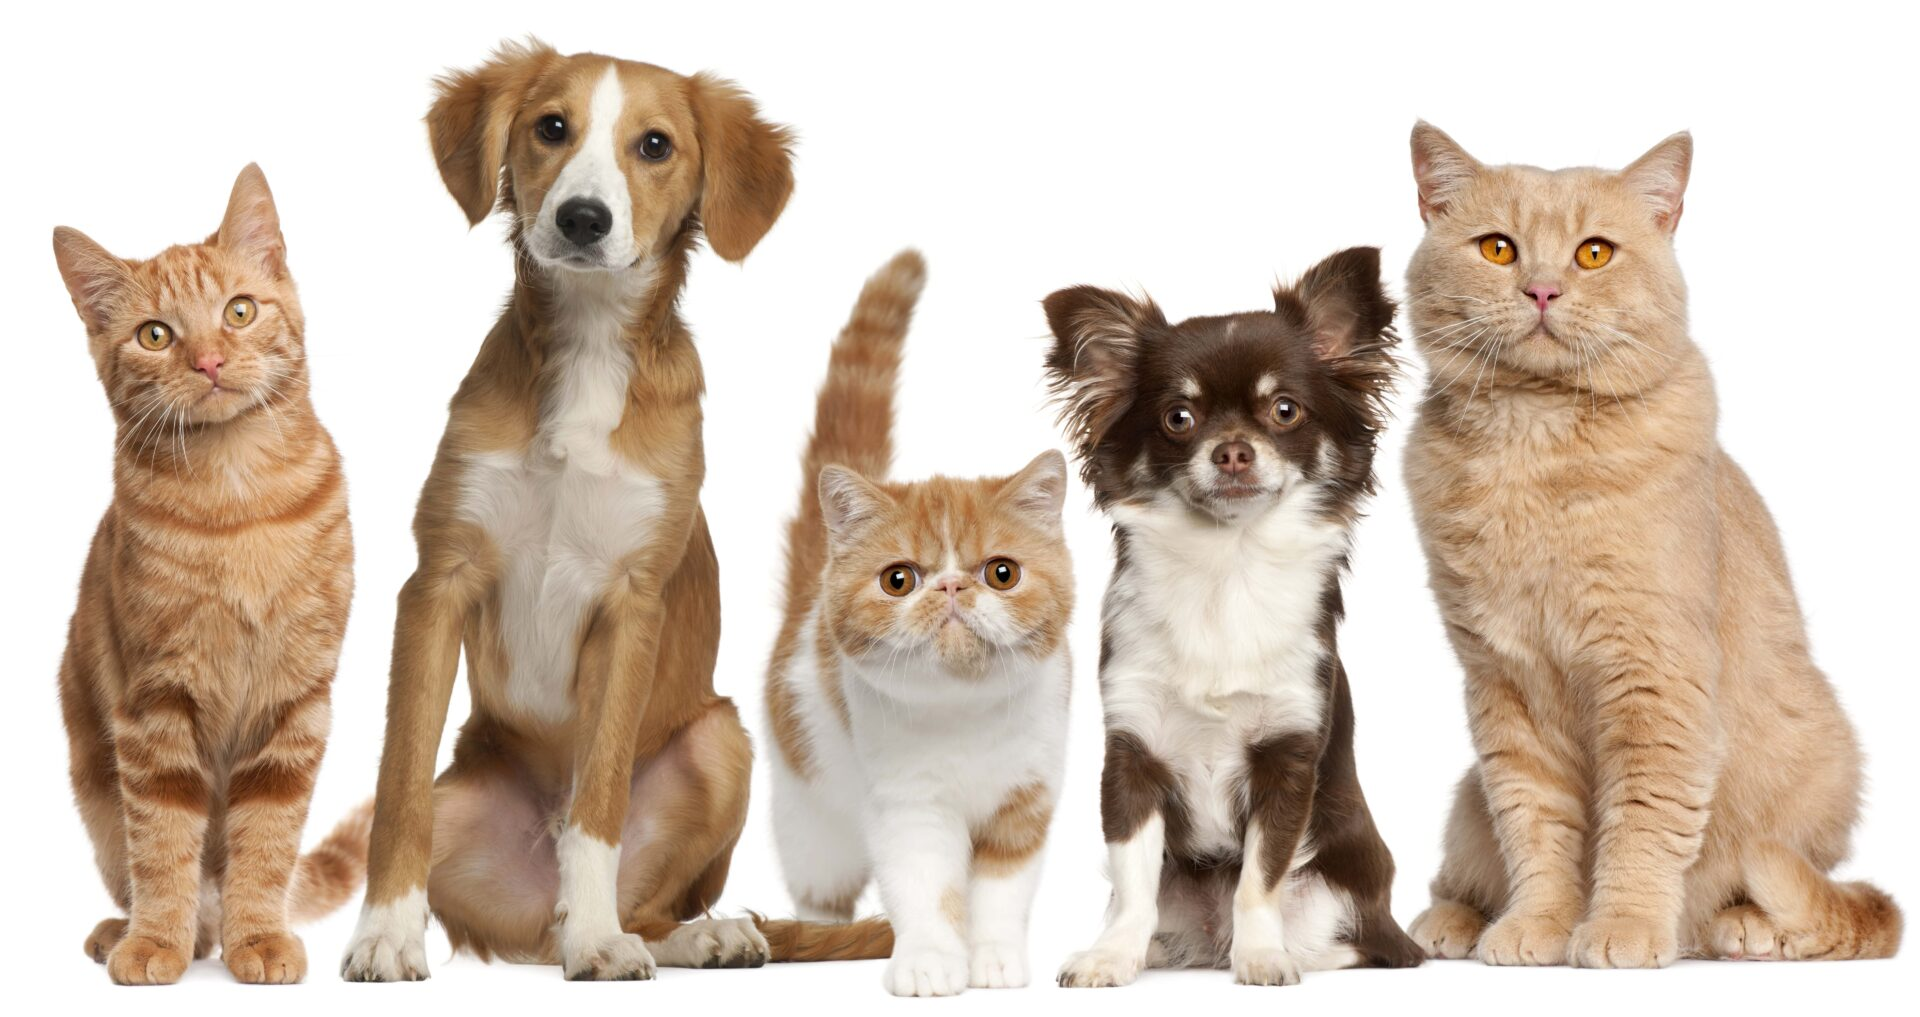 Cats & Dogs Statistics